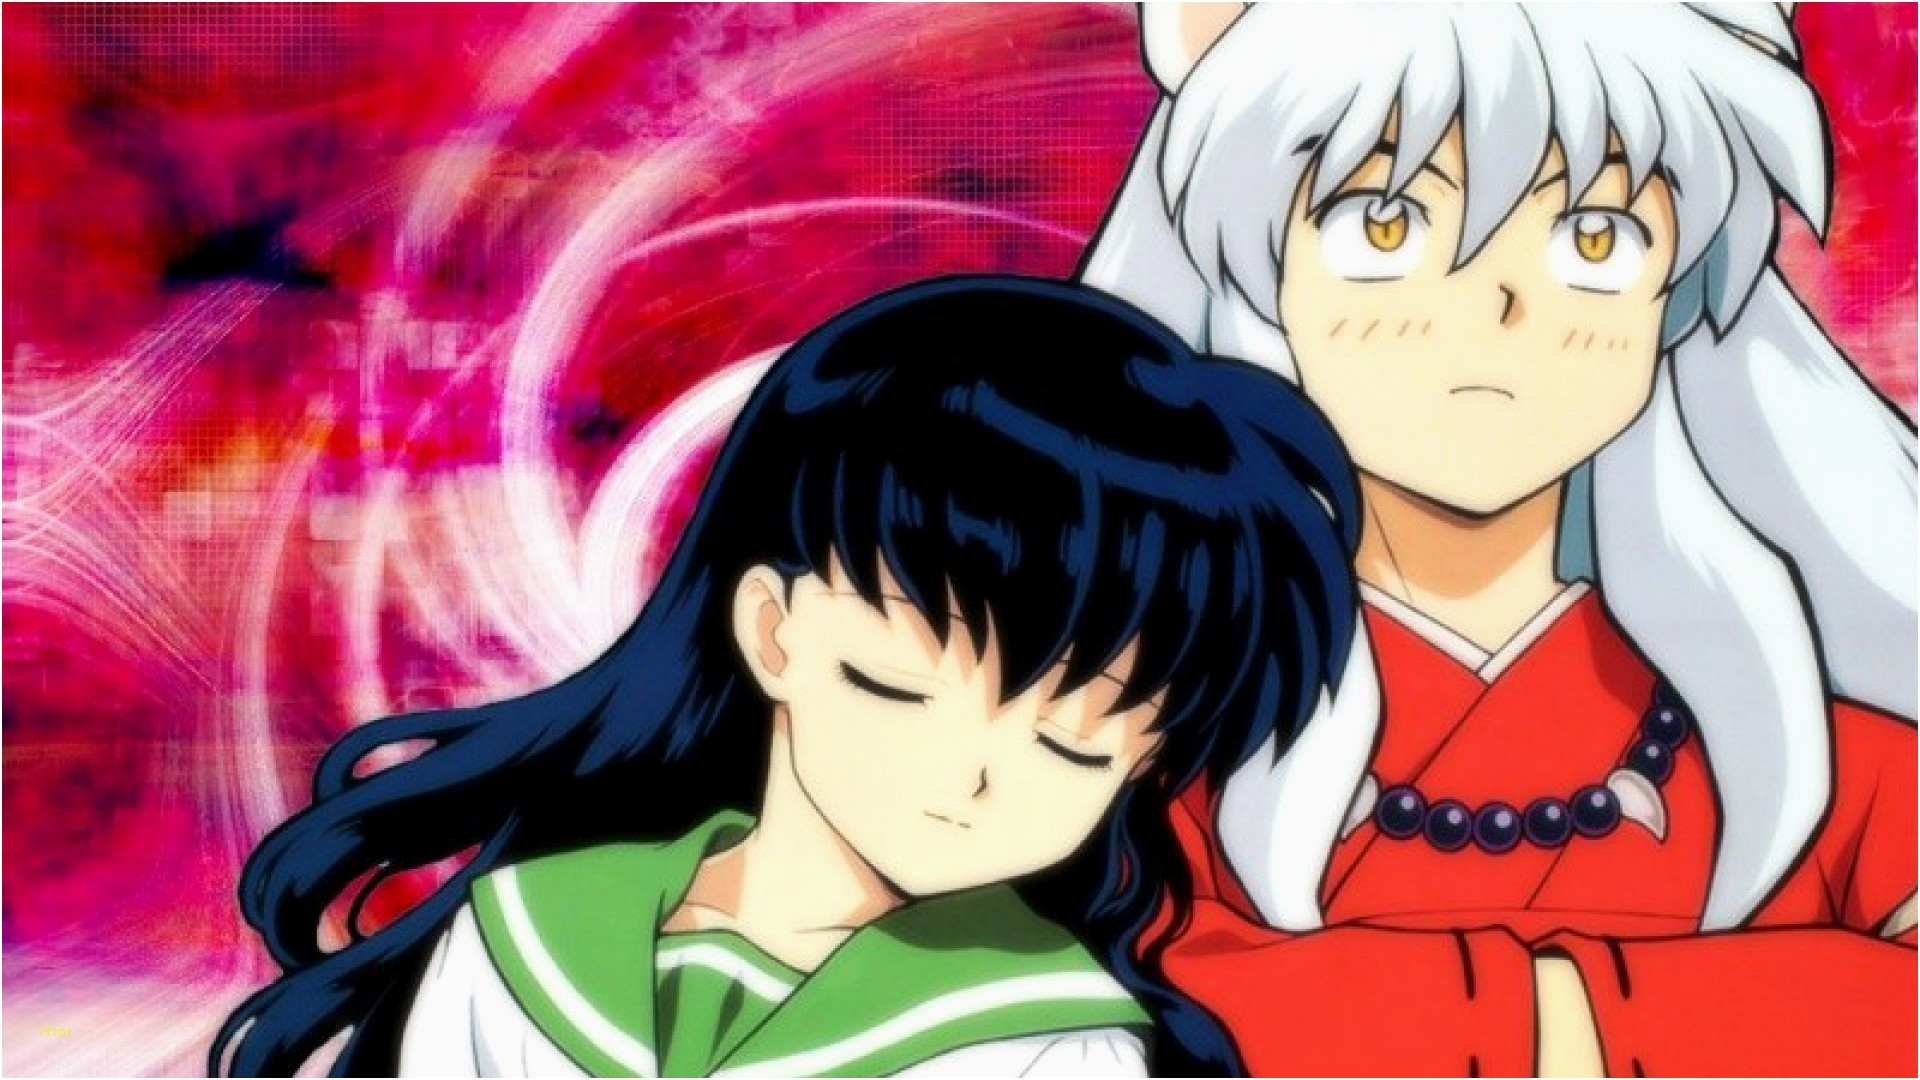 1920x1080 ... Inuyasha Wallpaper New Inuyasha Wallpapers High Quality ...